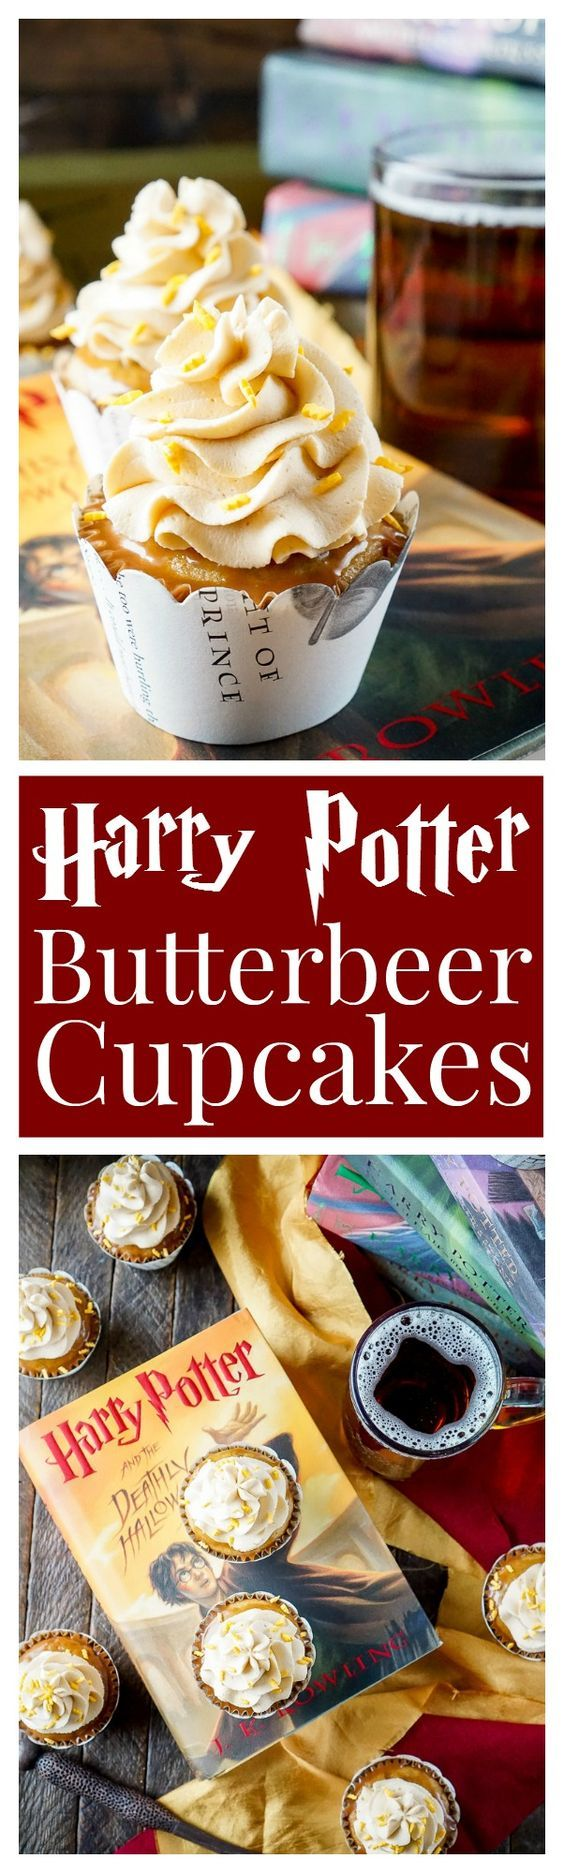 These Harry Potter Butterbeer Cupcakes are AMAZING and will cast a spell on your taste buds and leave you in a state of geeky bliss!: